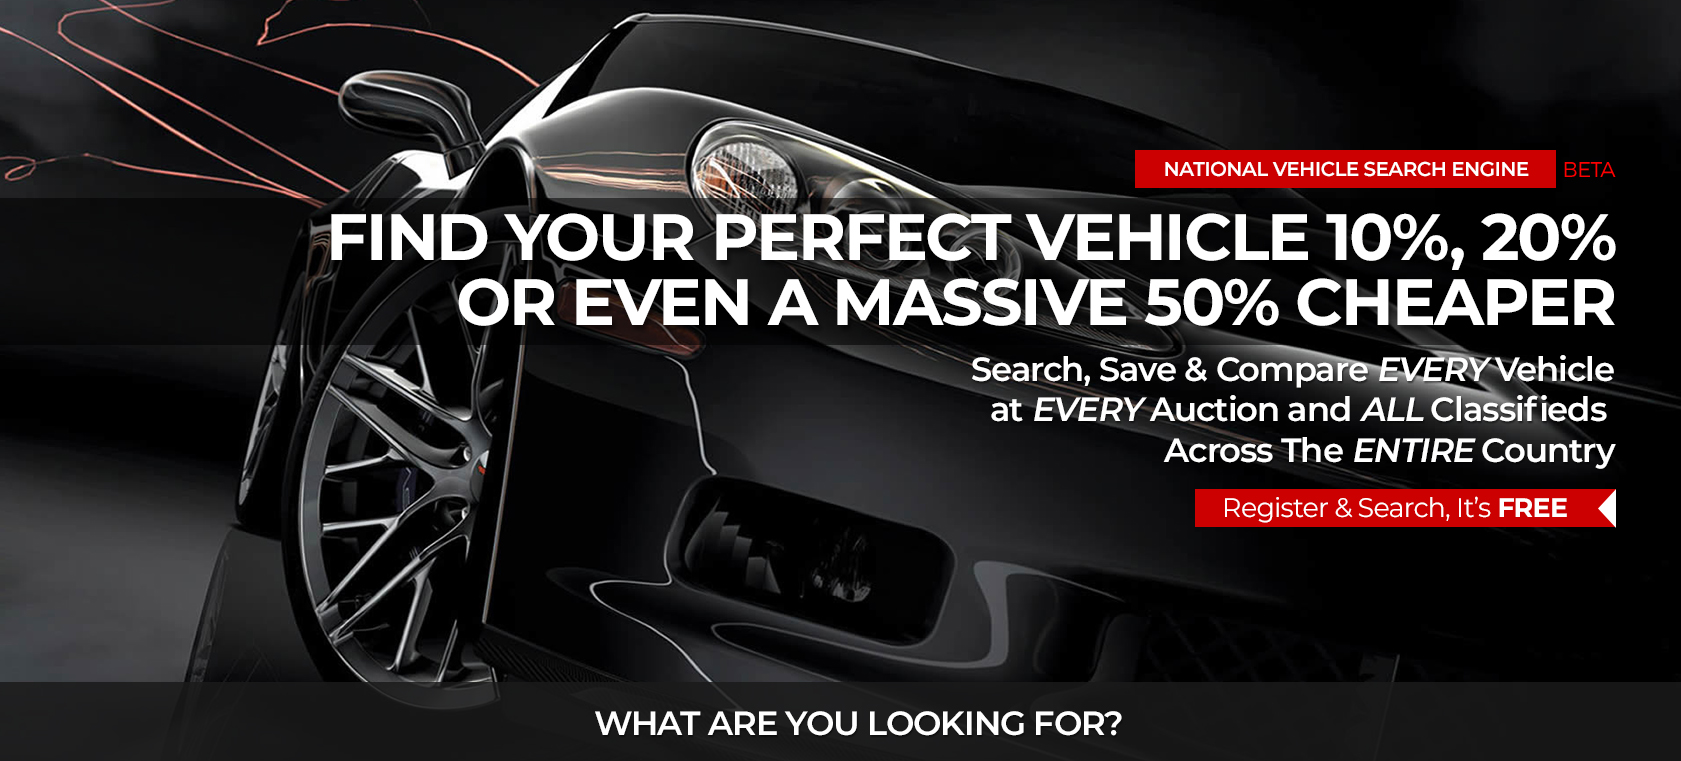 Uk car auction search search all uk car auctions uk car auction search search all uk car auctions